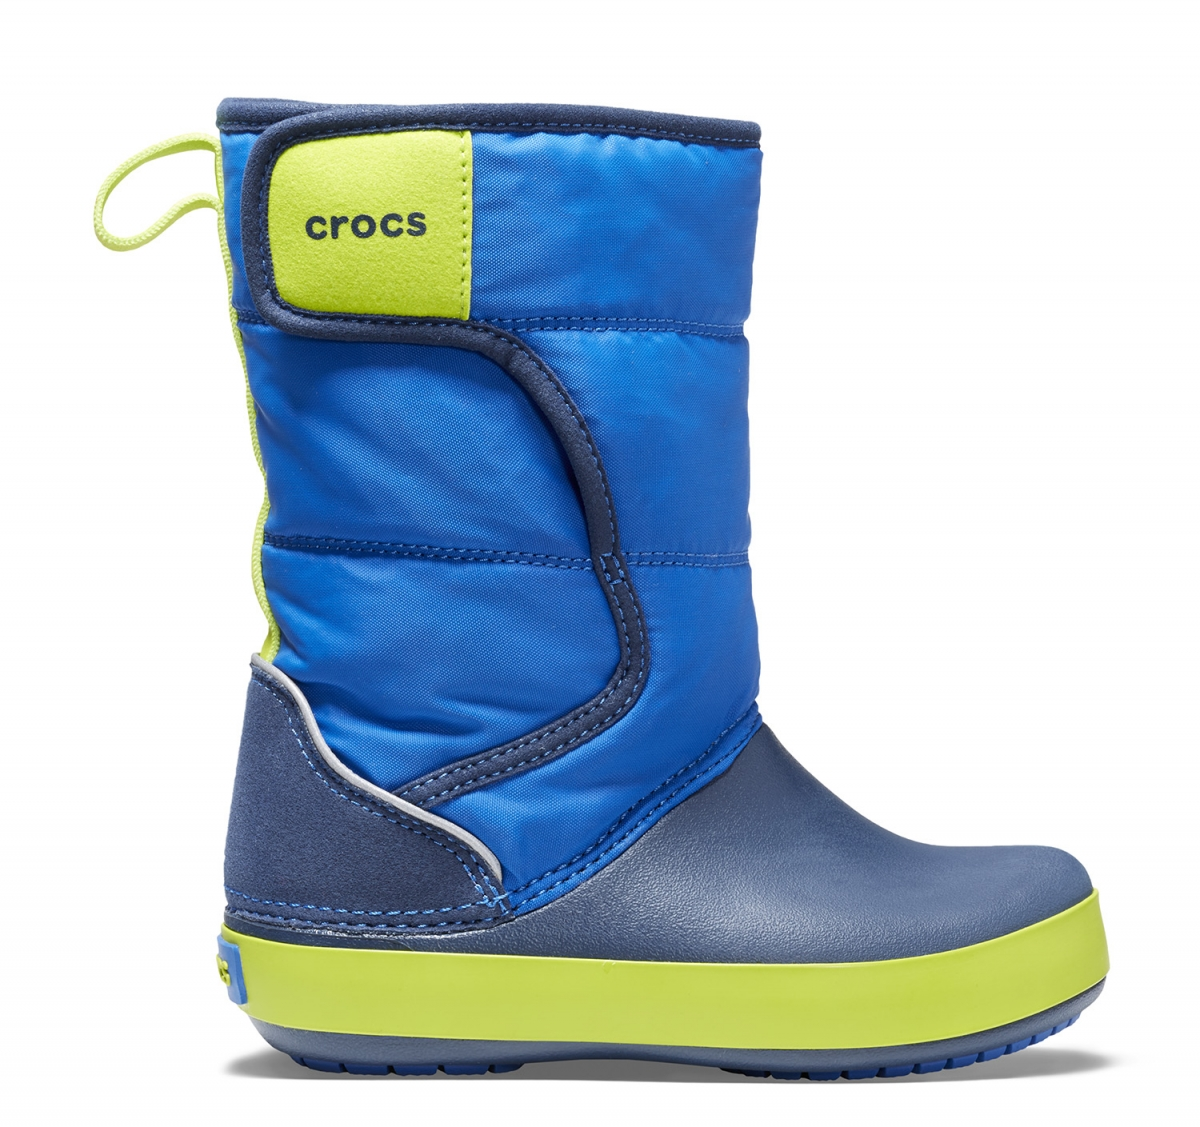 Crocs LodgePoint Snow Boot Kids - Blue Jean/Navy, C12 (29-30)